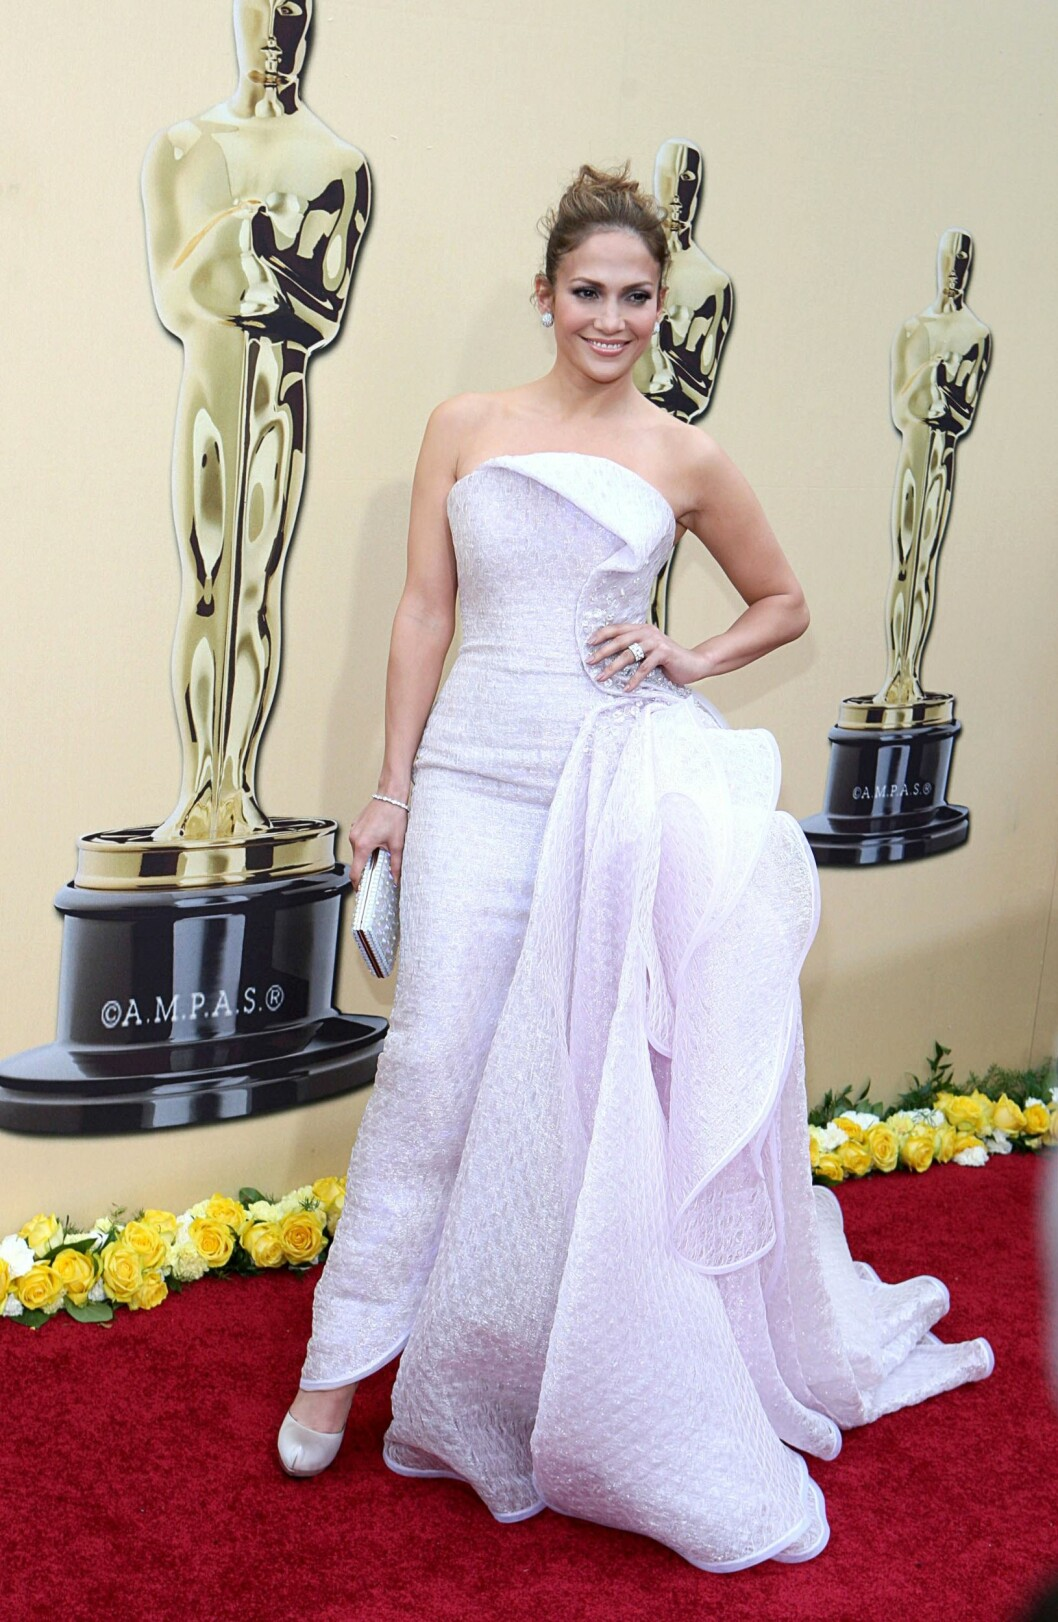 Jennifer Lopez (wearing an Armani Privé gown) at arrivals for 82nd Annual Academy Awards Oscars Ceremony - ARRIVALS, The Kodak Theatre, Los Angeles, CA March 7, 2010. Photo By: Emilio Flores/Everett Collection Foto: Emilio Flores/Everett Collection                                                                    /All Over Press